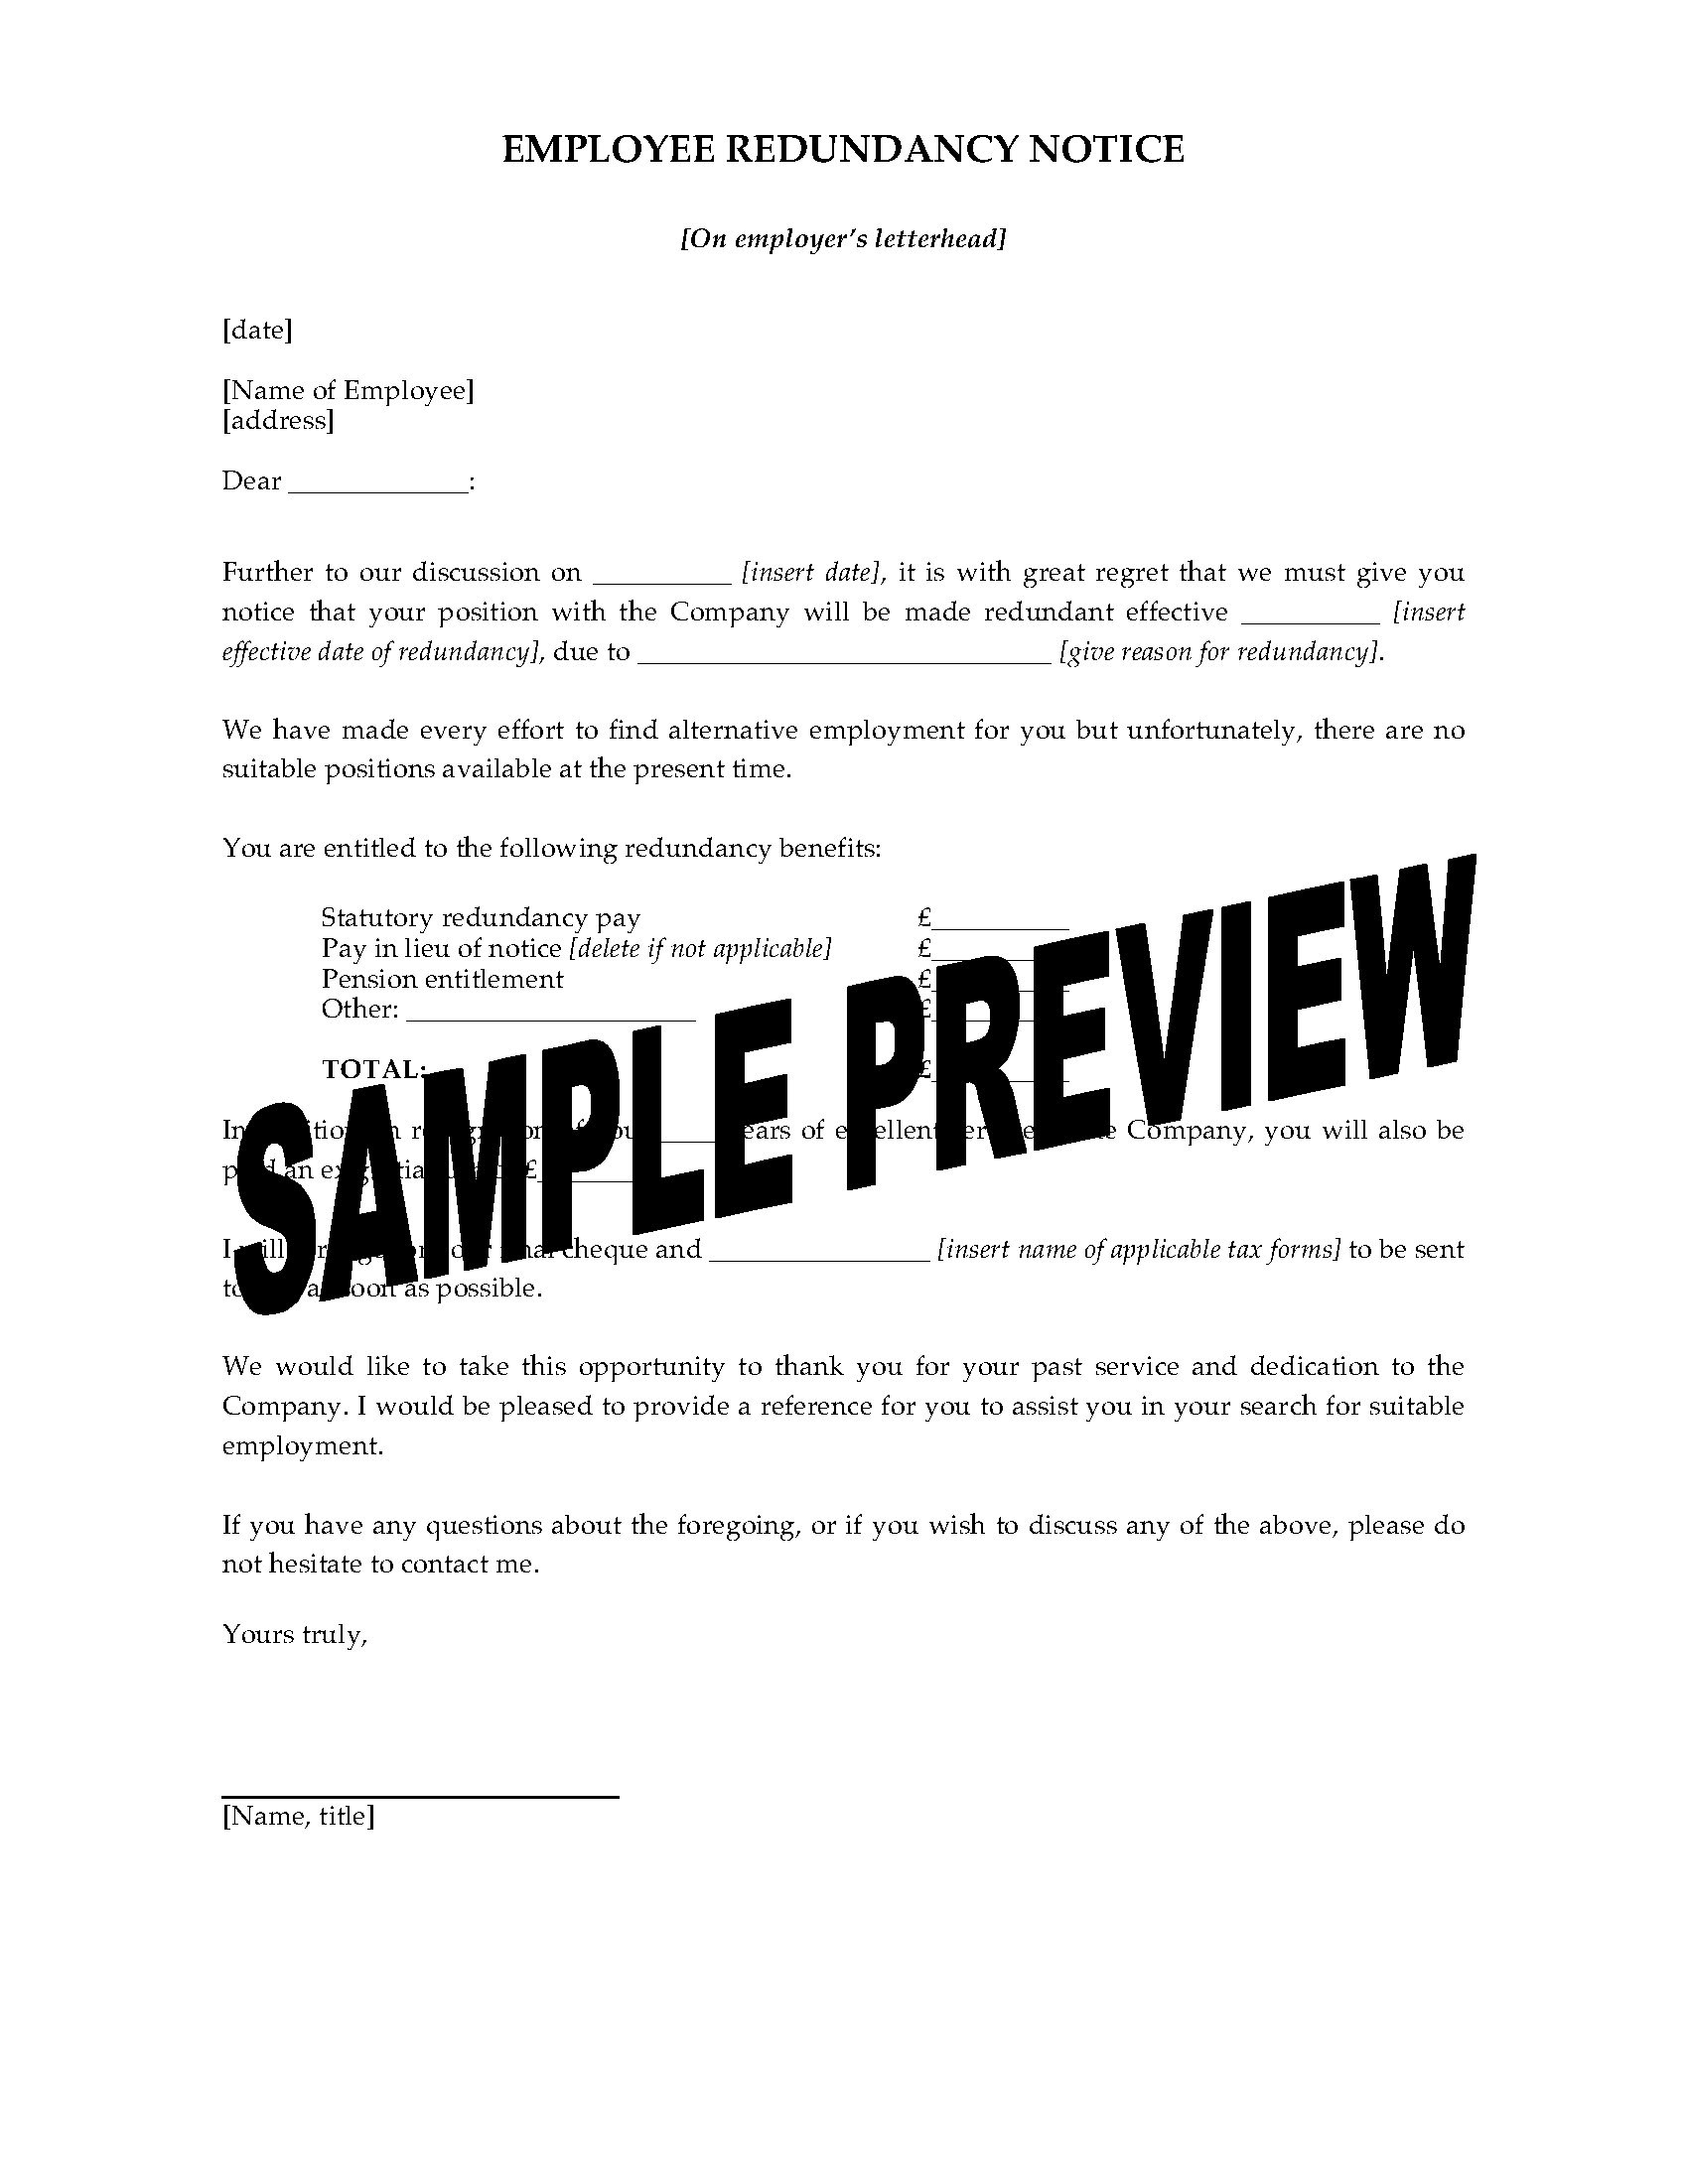 redundancy letter template uk  UK Employee Redundancy Notice Form | Legal Forms and ..